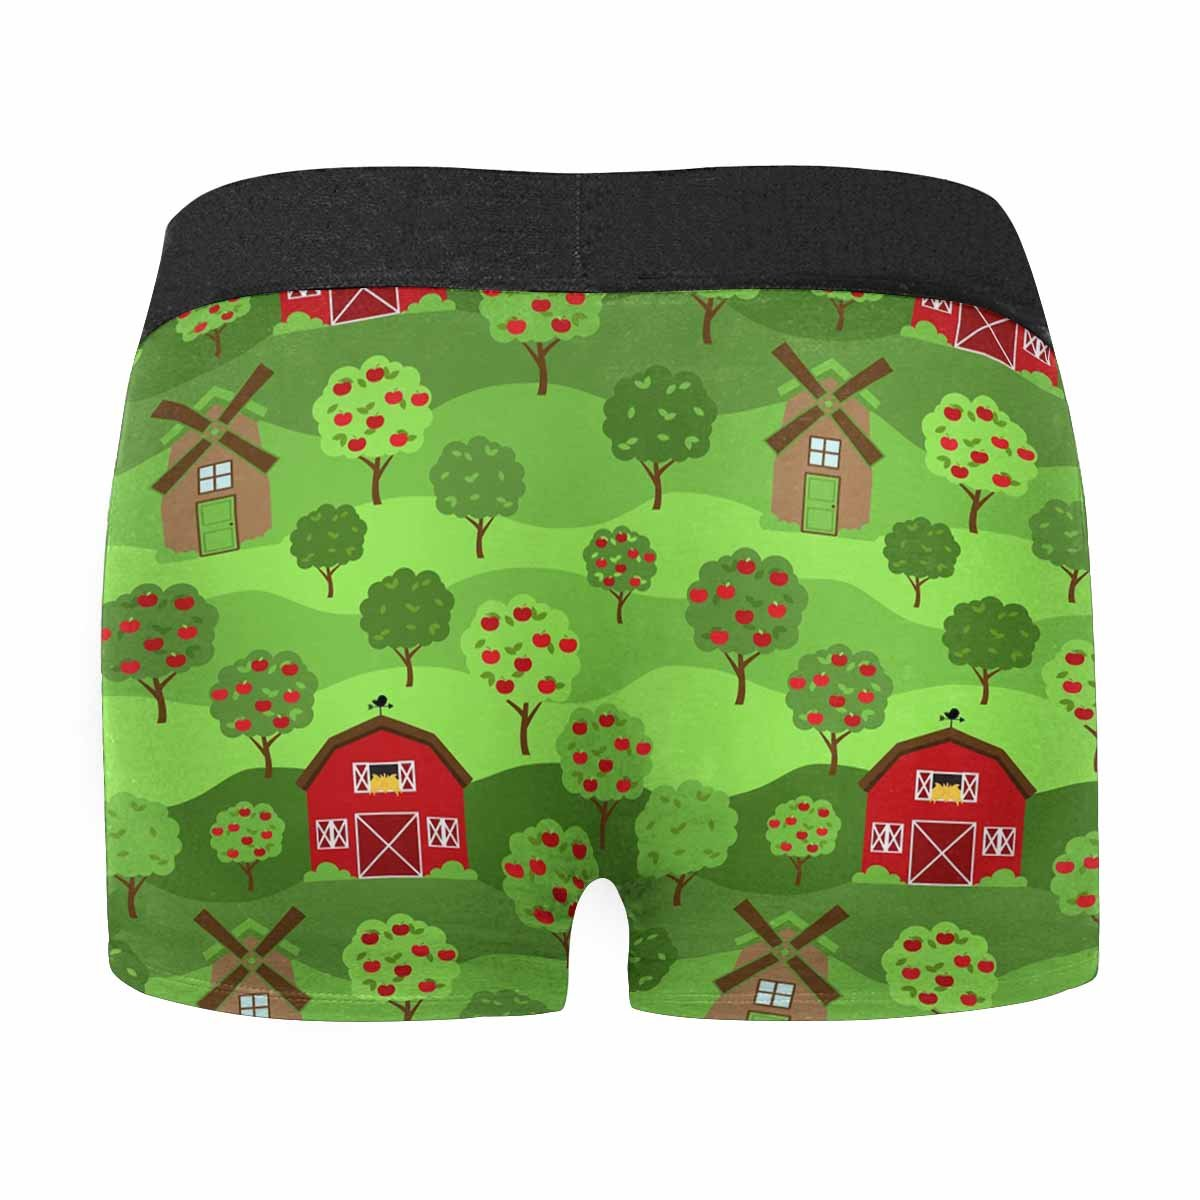 XS-3XL INTERESTPRINT Mens Boxer Briefs Underwear Tileable Farm Or Orchard